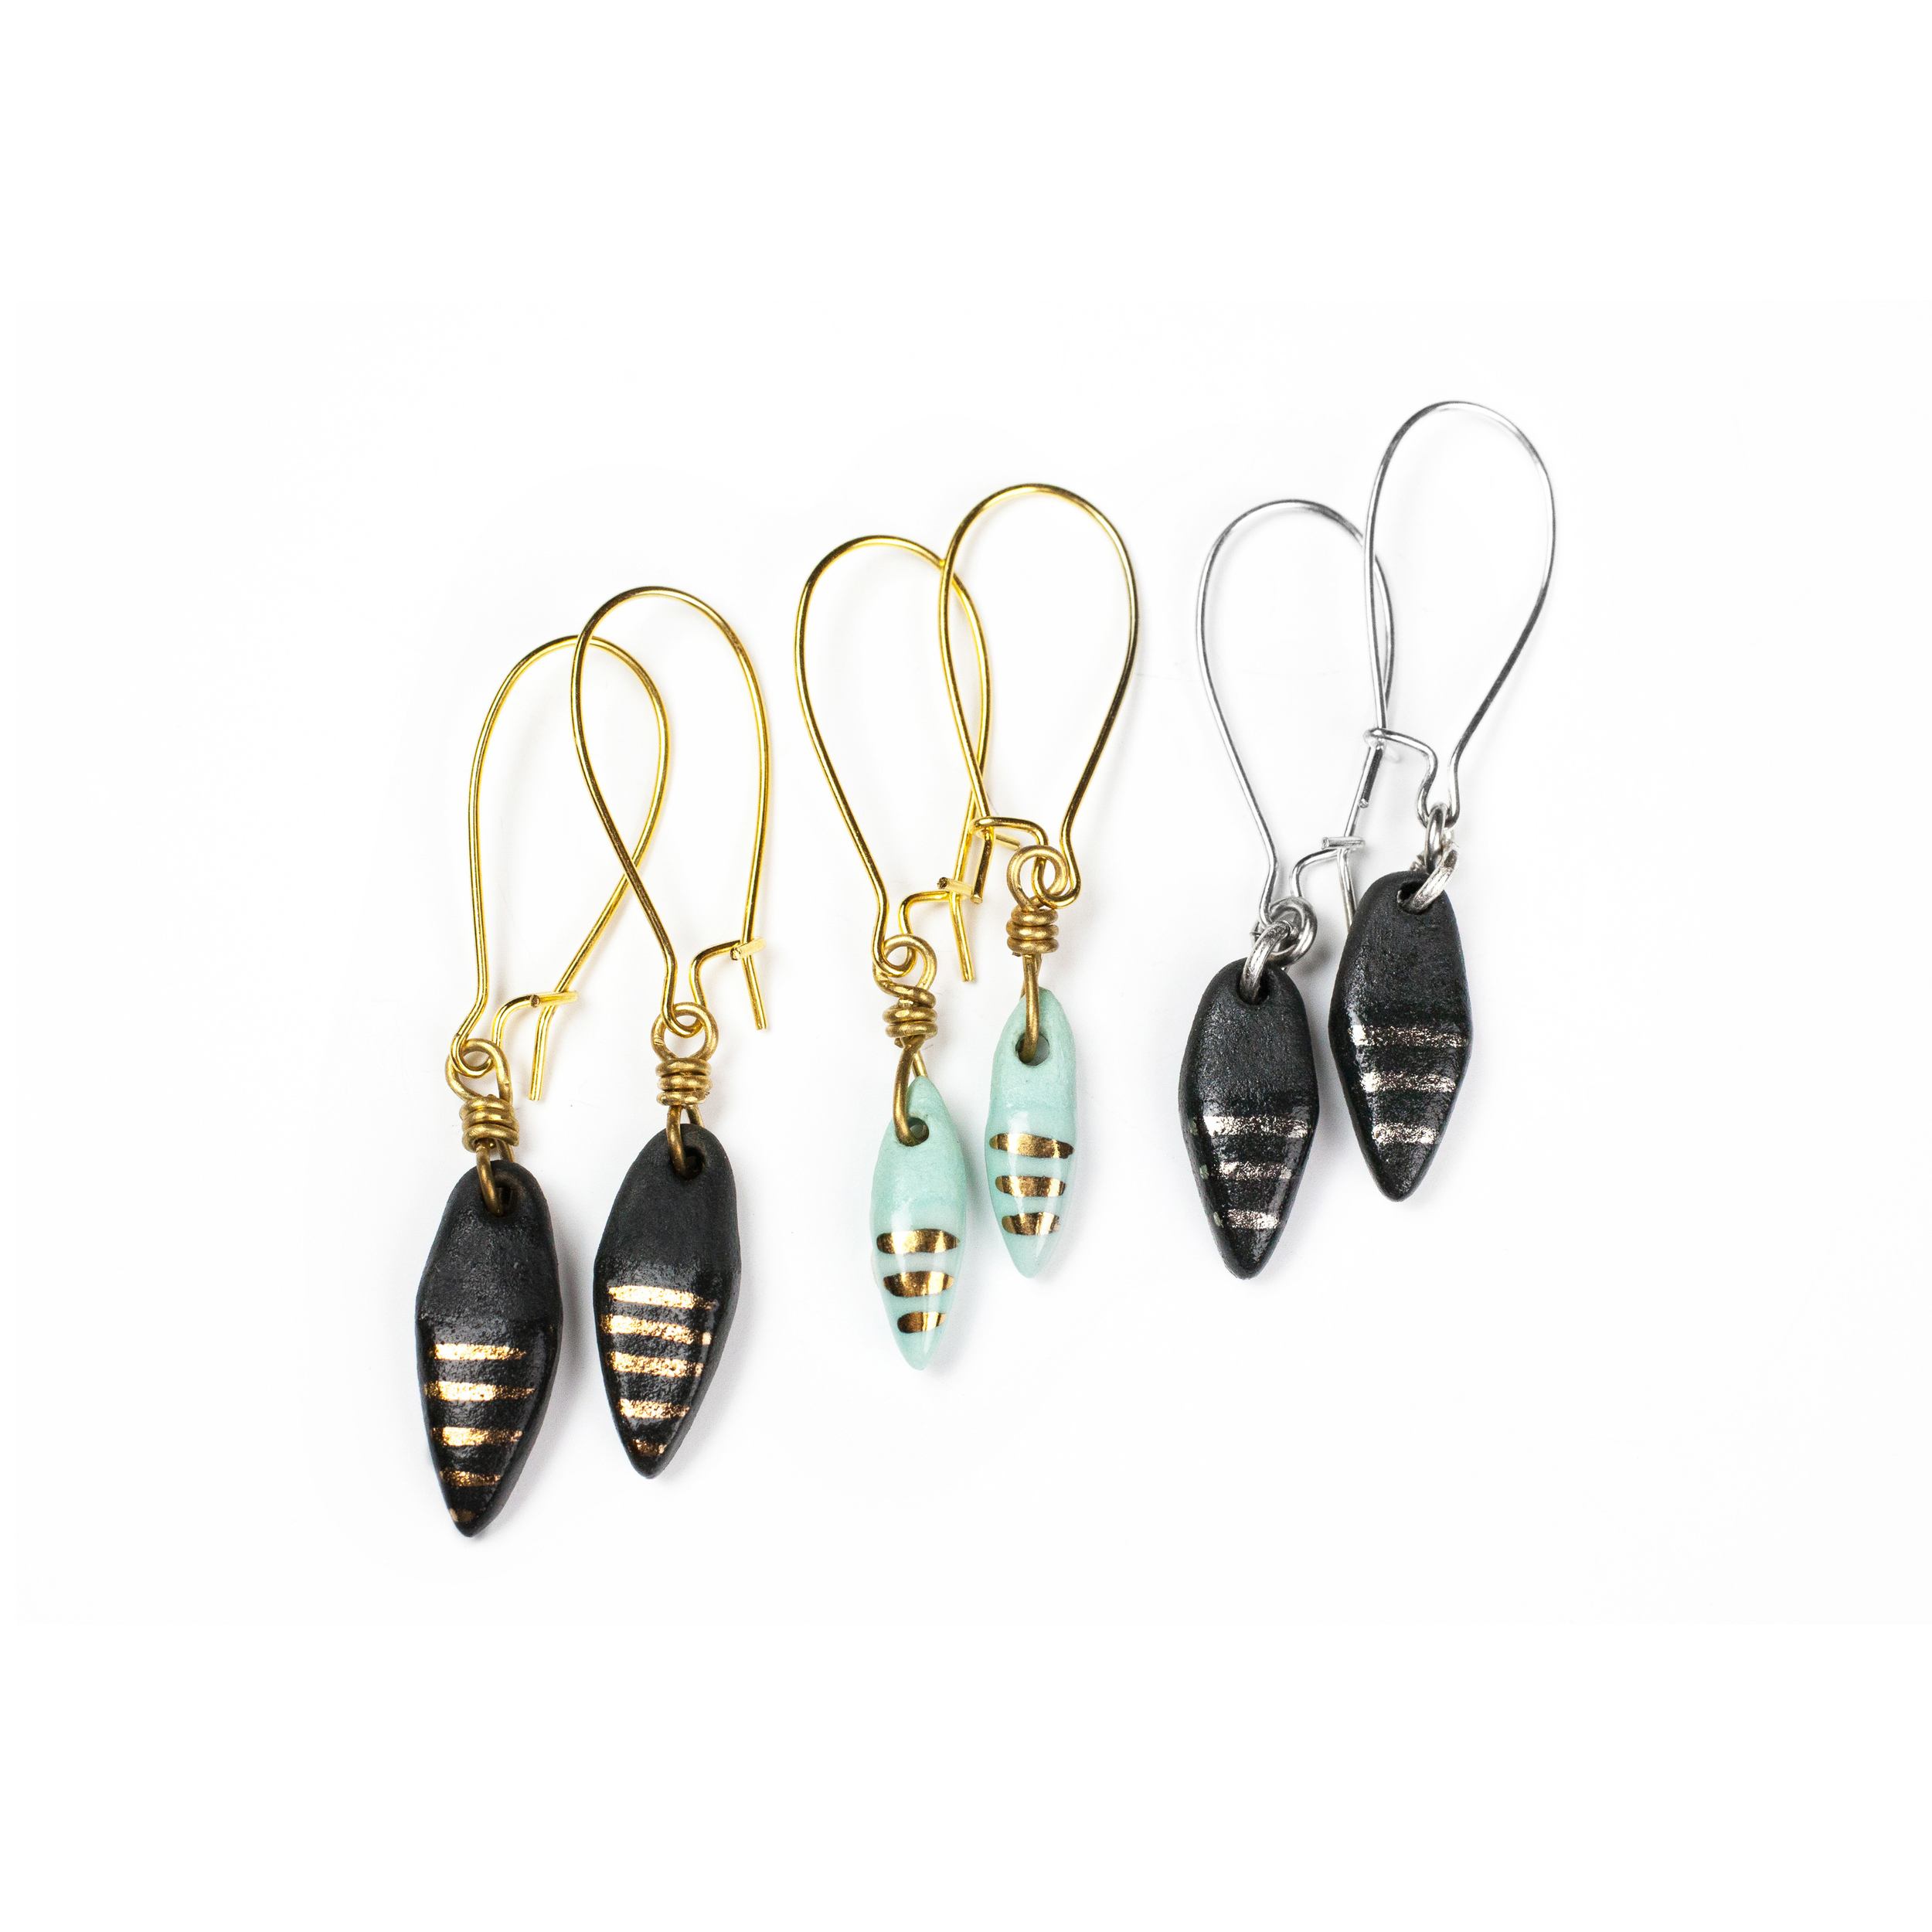 STRIPED ARROW EARRINGS